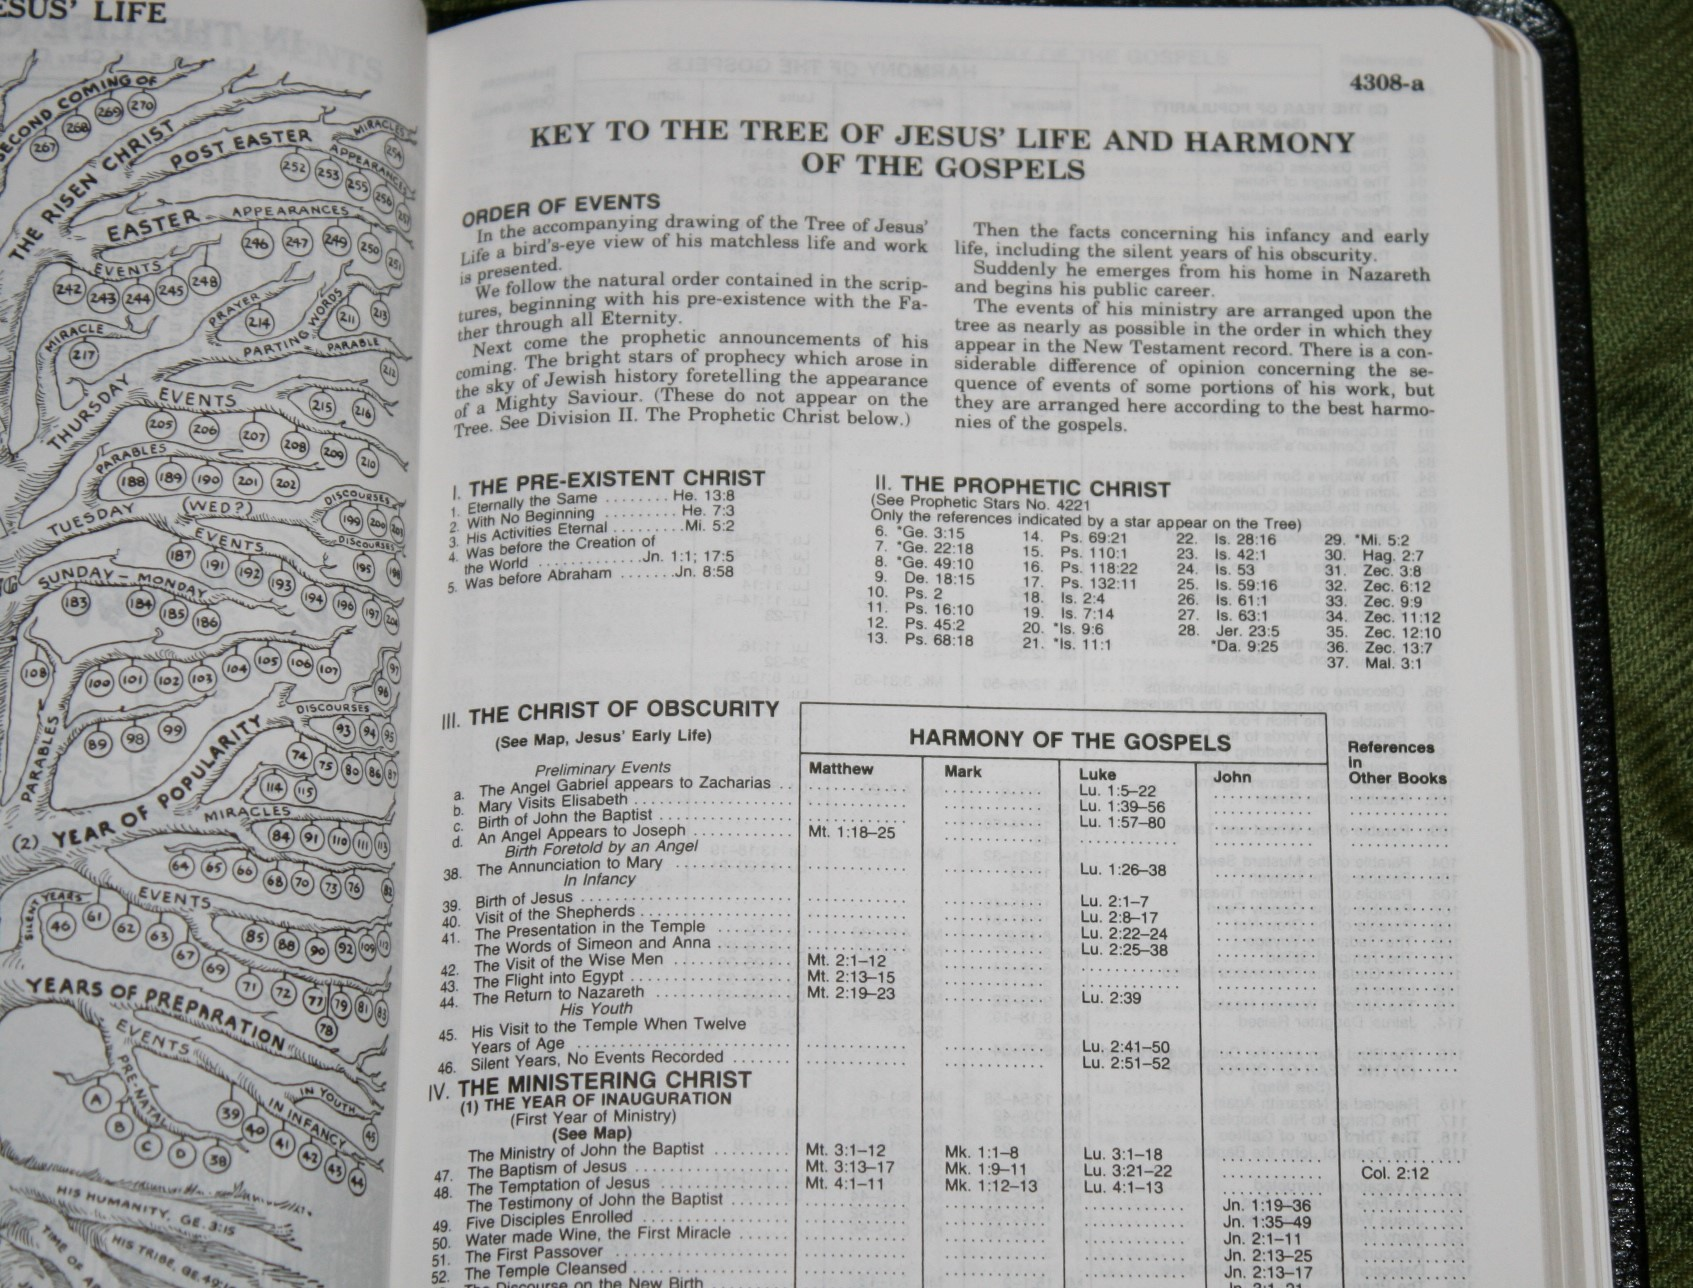 Handy Size Thompson Chain Reference Bible KJV (191)